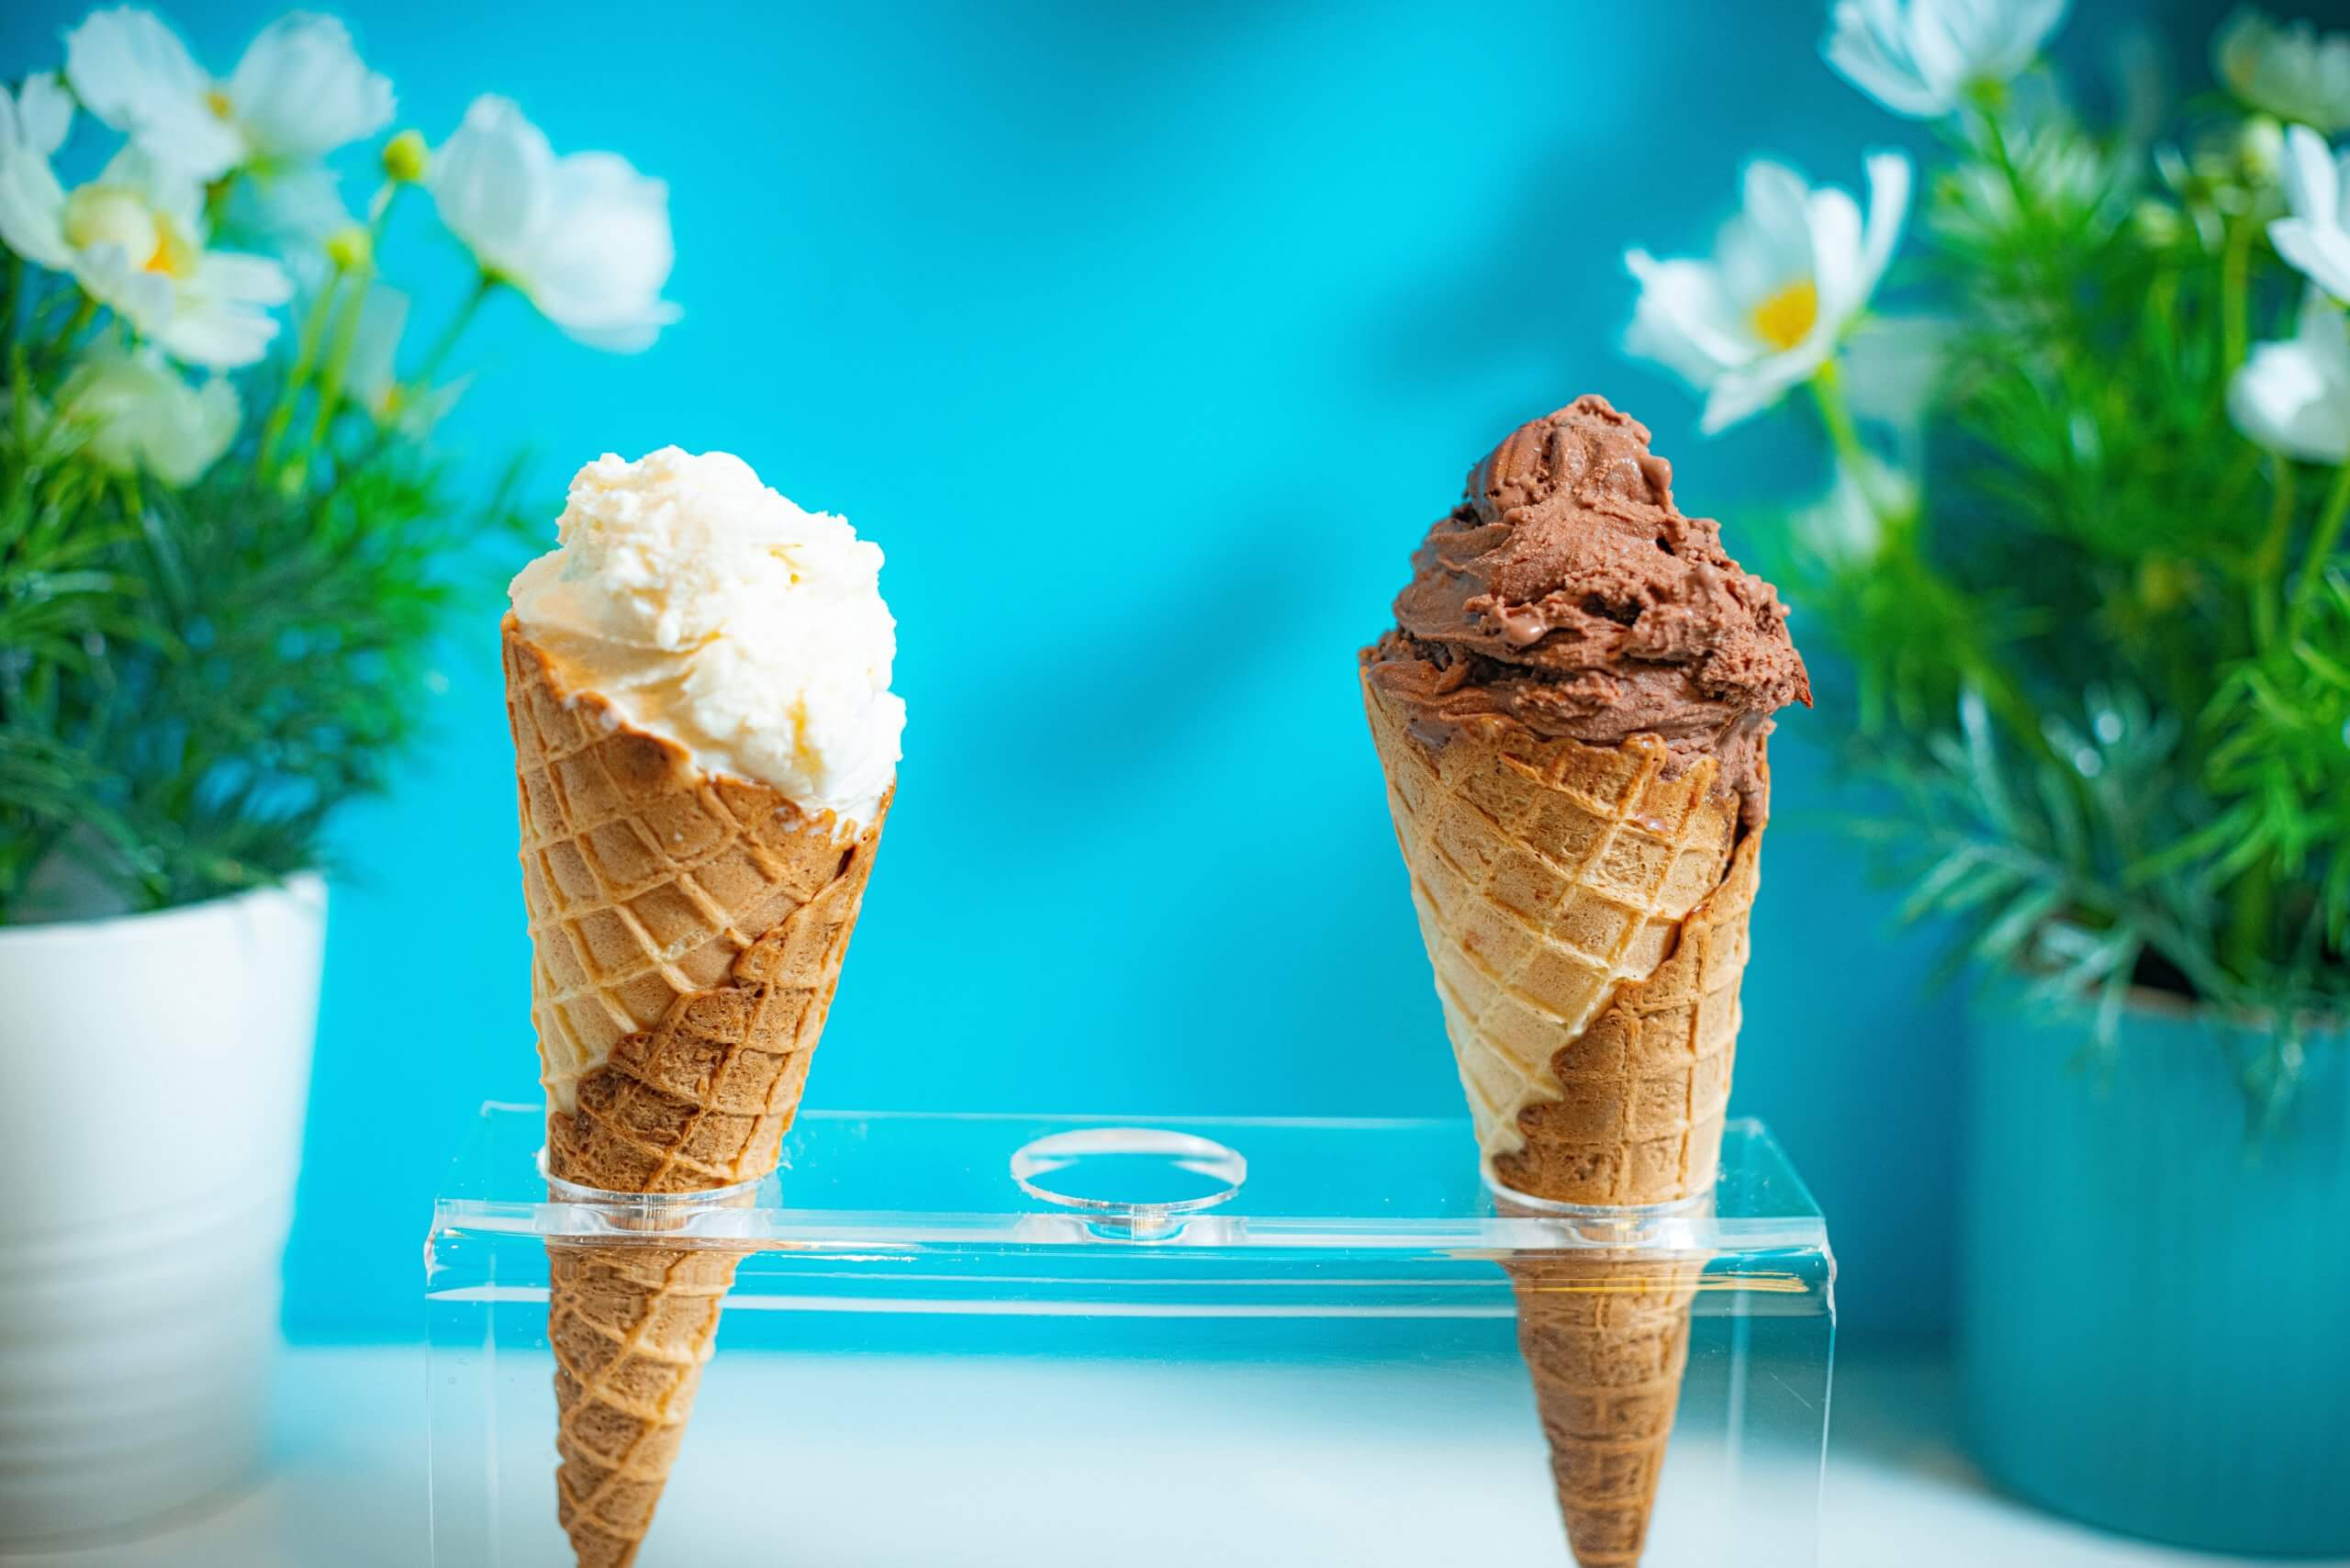 Two ice-cream cones in front of flowers